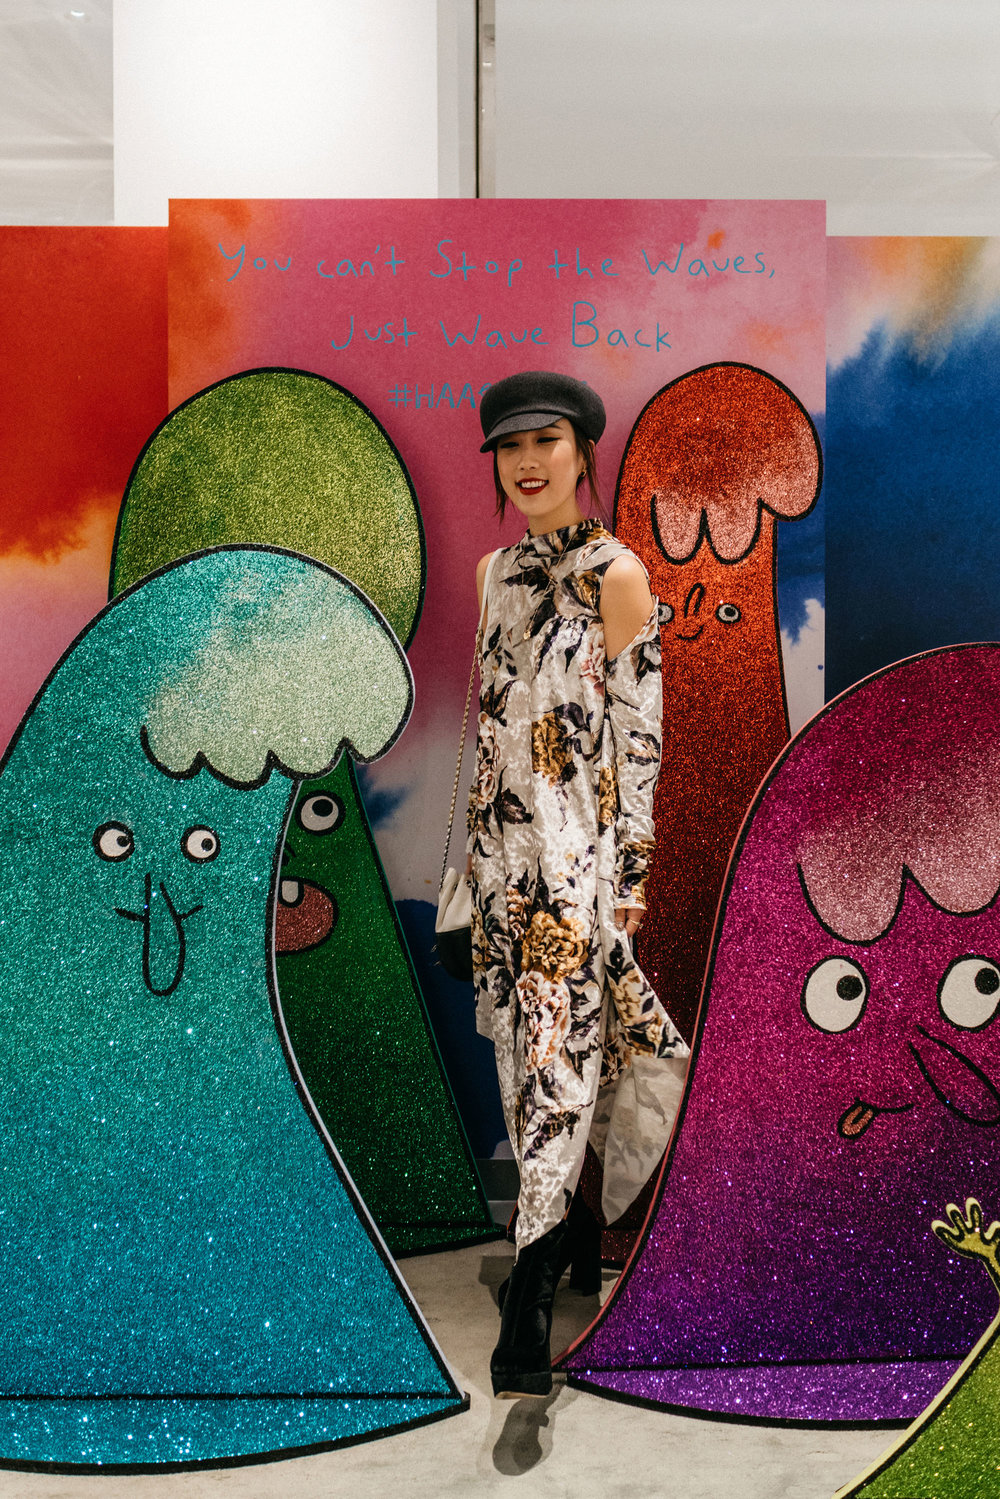 Barneys New York  #HaasRules   #HaasForTheHolidays  Event, wearing MM6 Maison Margiela Dress, Miu Miu Boots